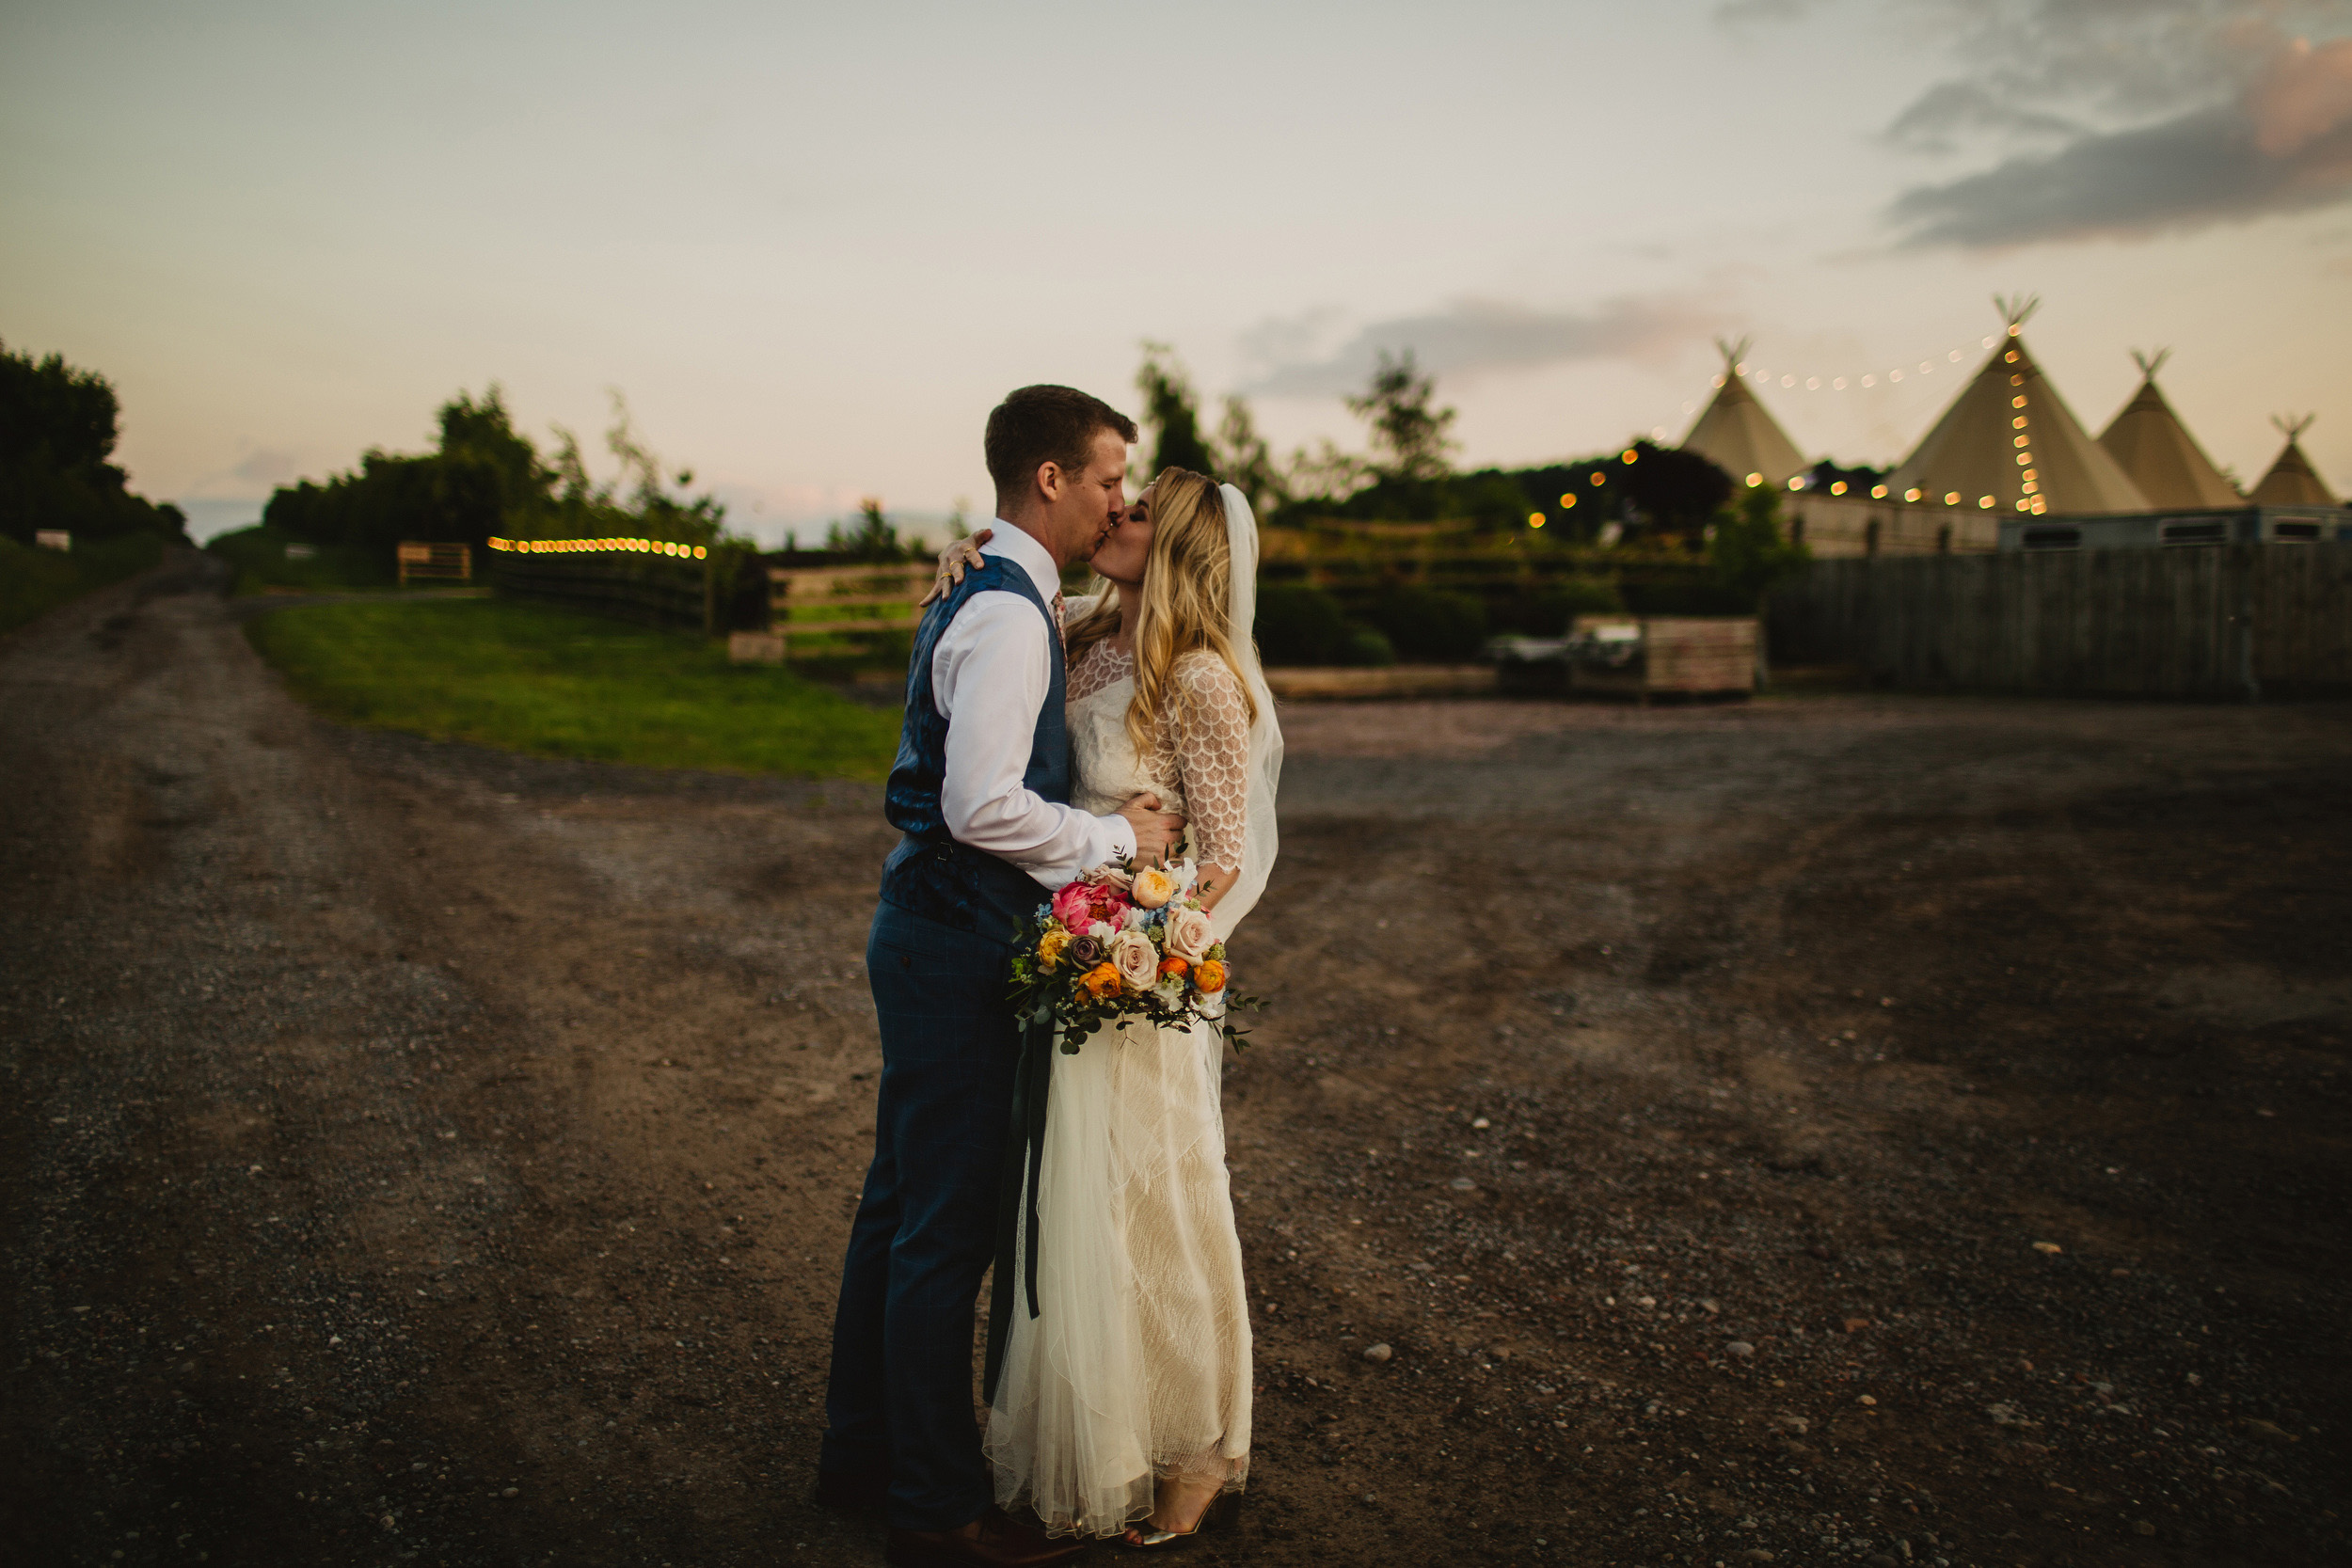 Gemma-Bohemian-Outdoor-Tipi-Wedding-Laid-Back-Relaxed-Family-Wedding-Kate-Beaumont-Astilbe-by-S6-Photography-Sheffield-65.jpg